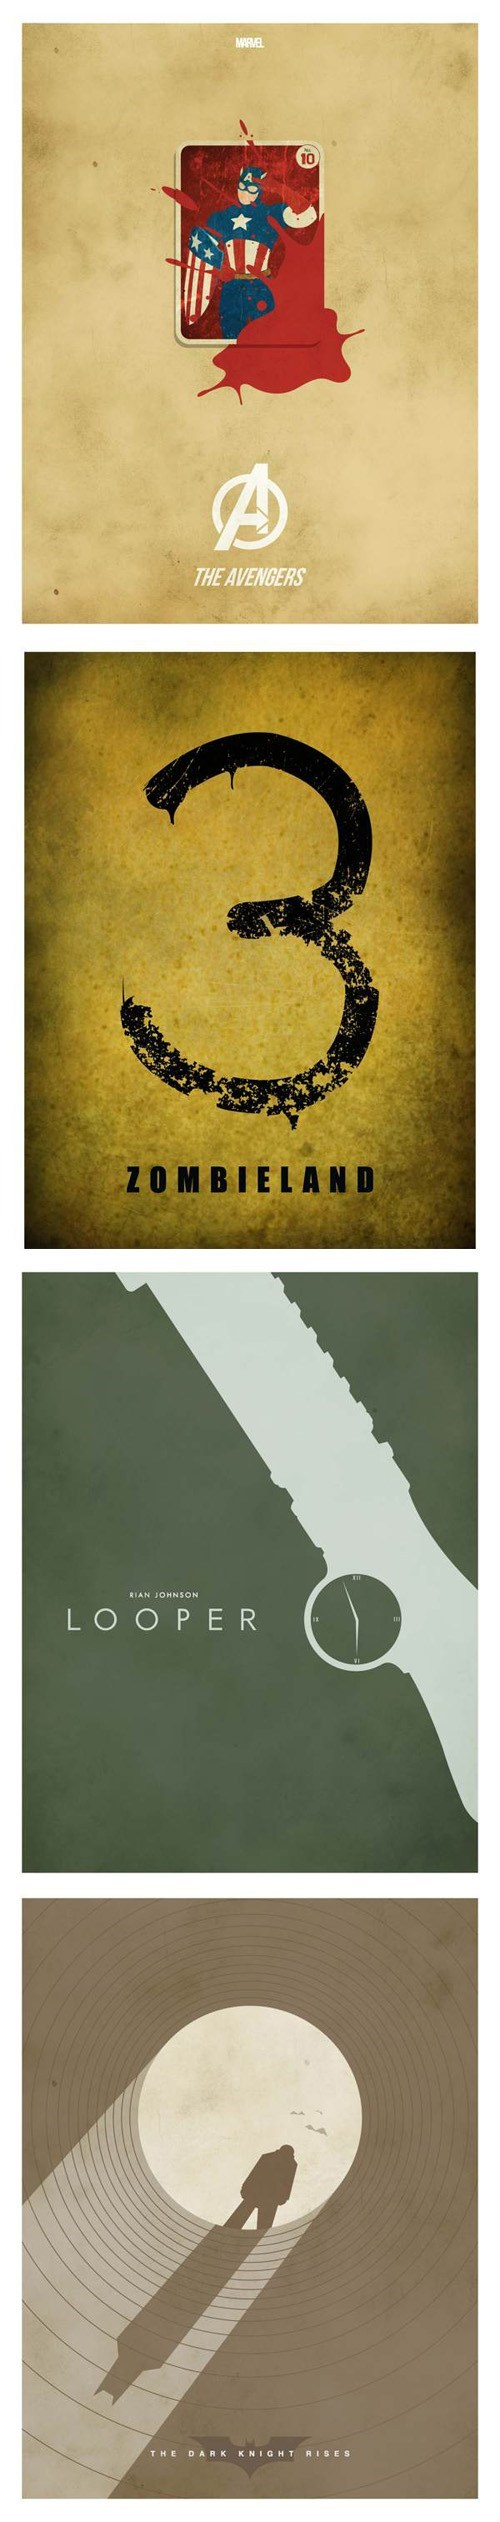 minimalist Fan Art The Avengers movie posters batman Zombieland looper - 7020398080